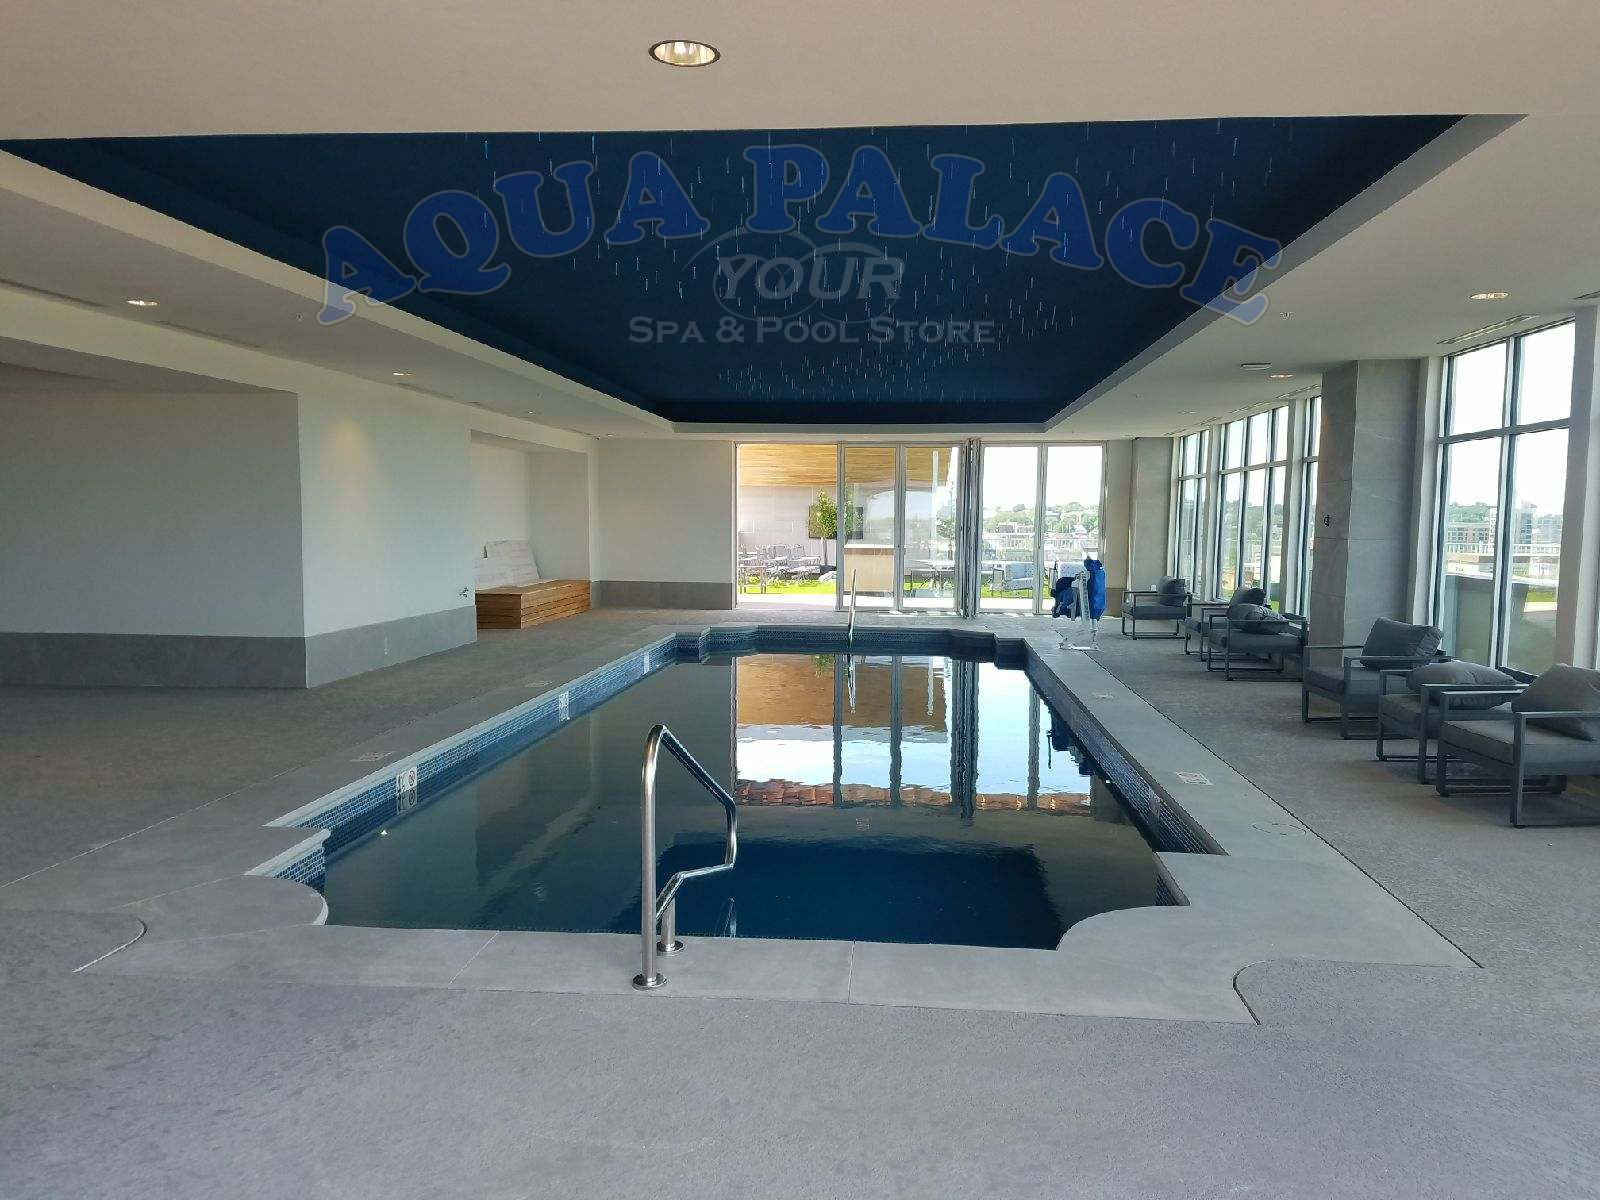 Atlas Apartments In Downtown Omaha Ne Fiberglass Pool On 8th Floor 16 X 44 Pool With Dual Staircases Cust Pool Builders Building A Pool Fiberglass Pools